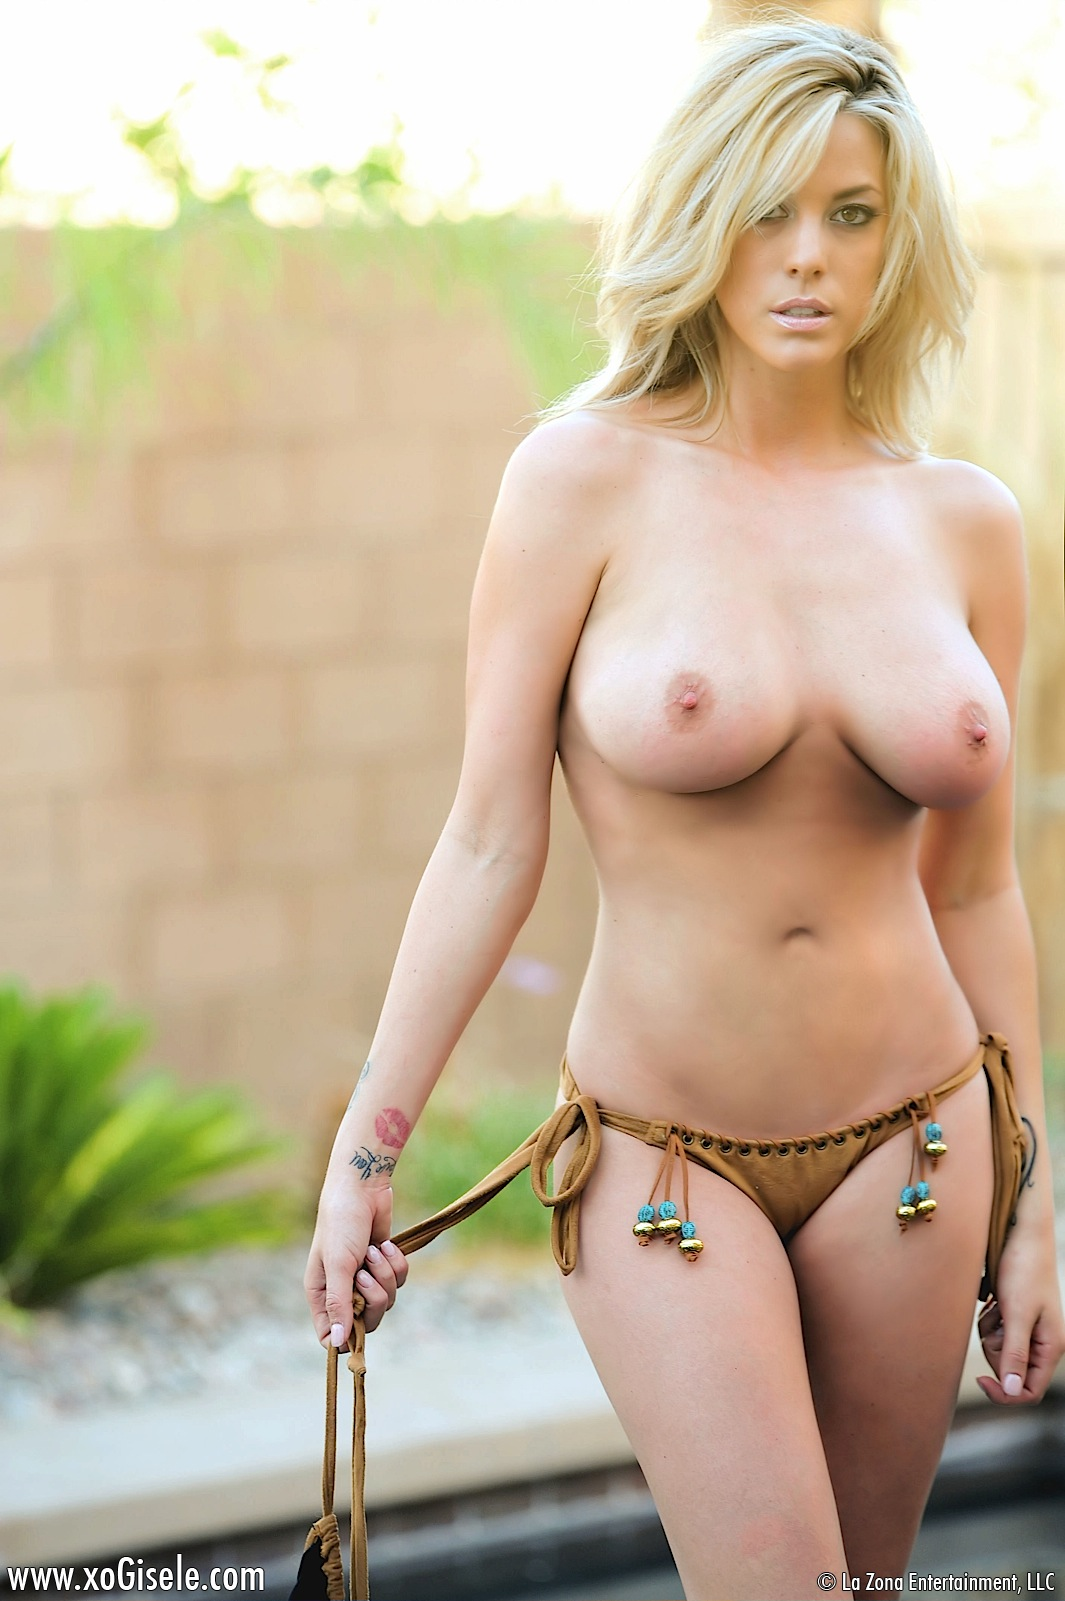 Pity, that Hot sexy busty blonde bikini girls